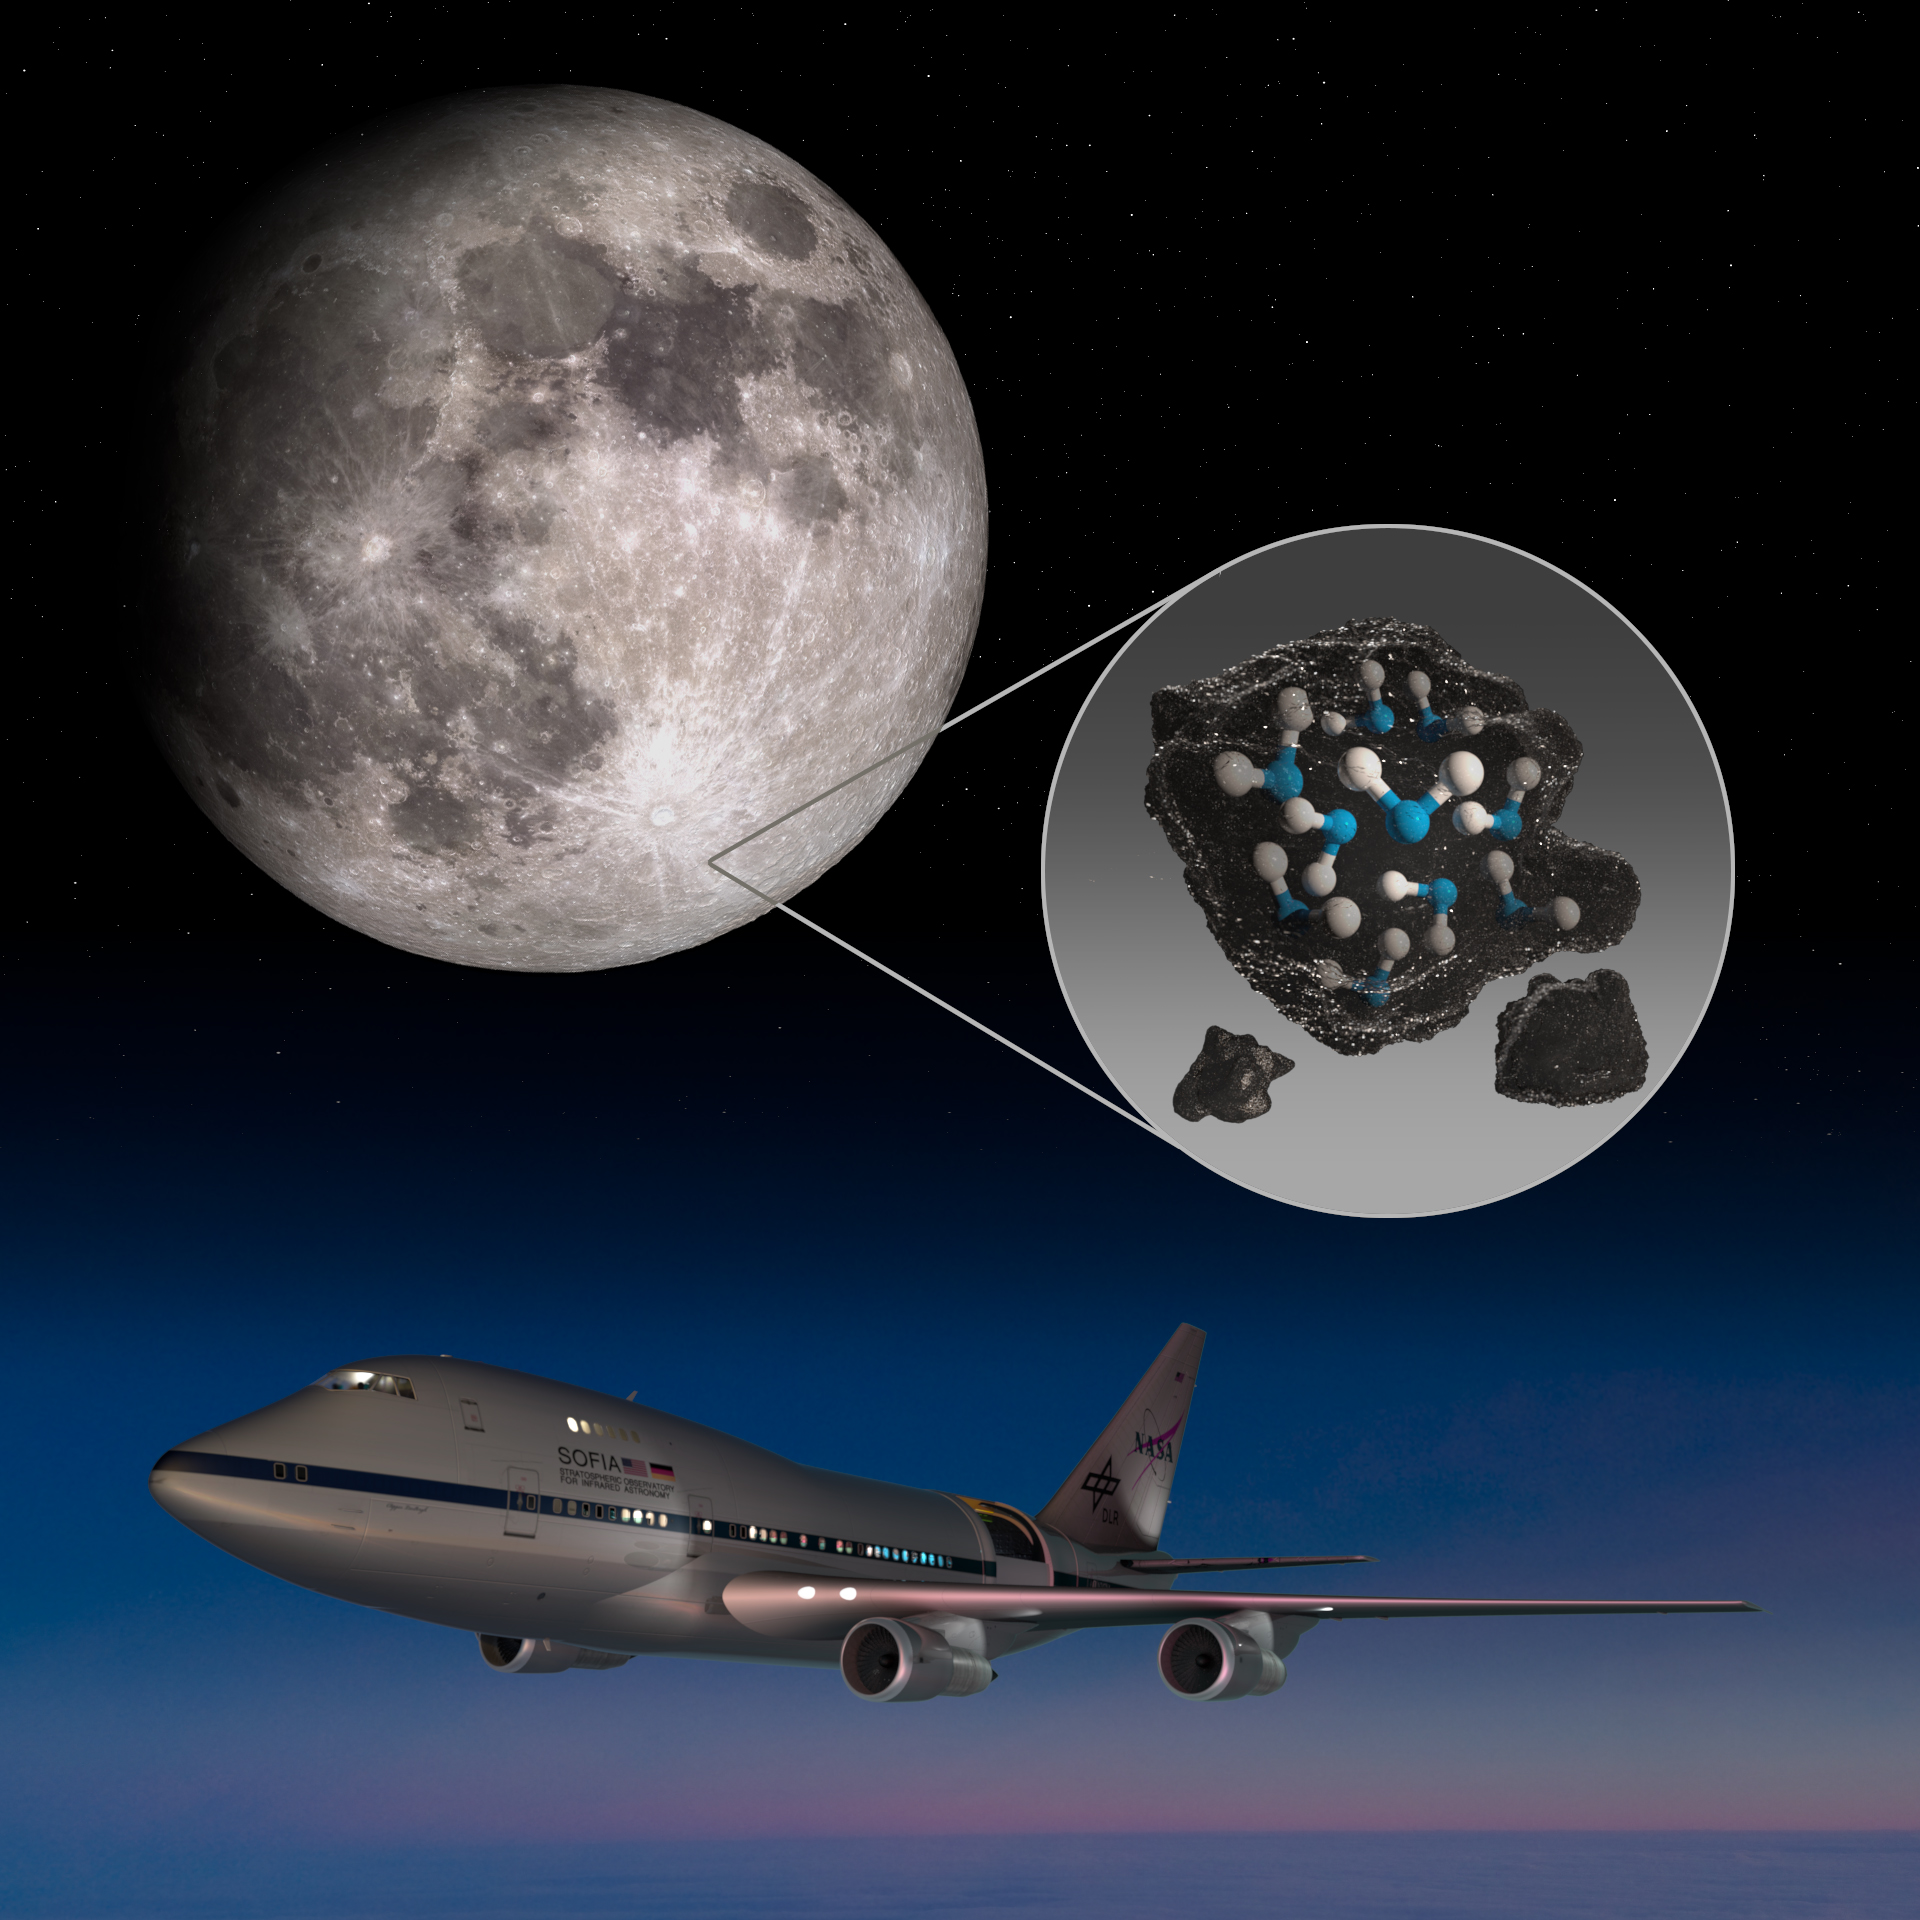 NASA's SOFIA Observatory Discovers Water Molecules on Sunlit Surface of Moon Aiding Artemis